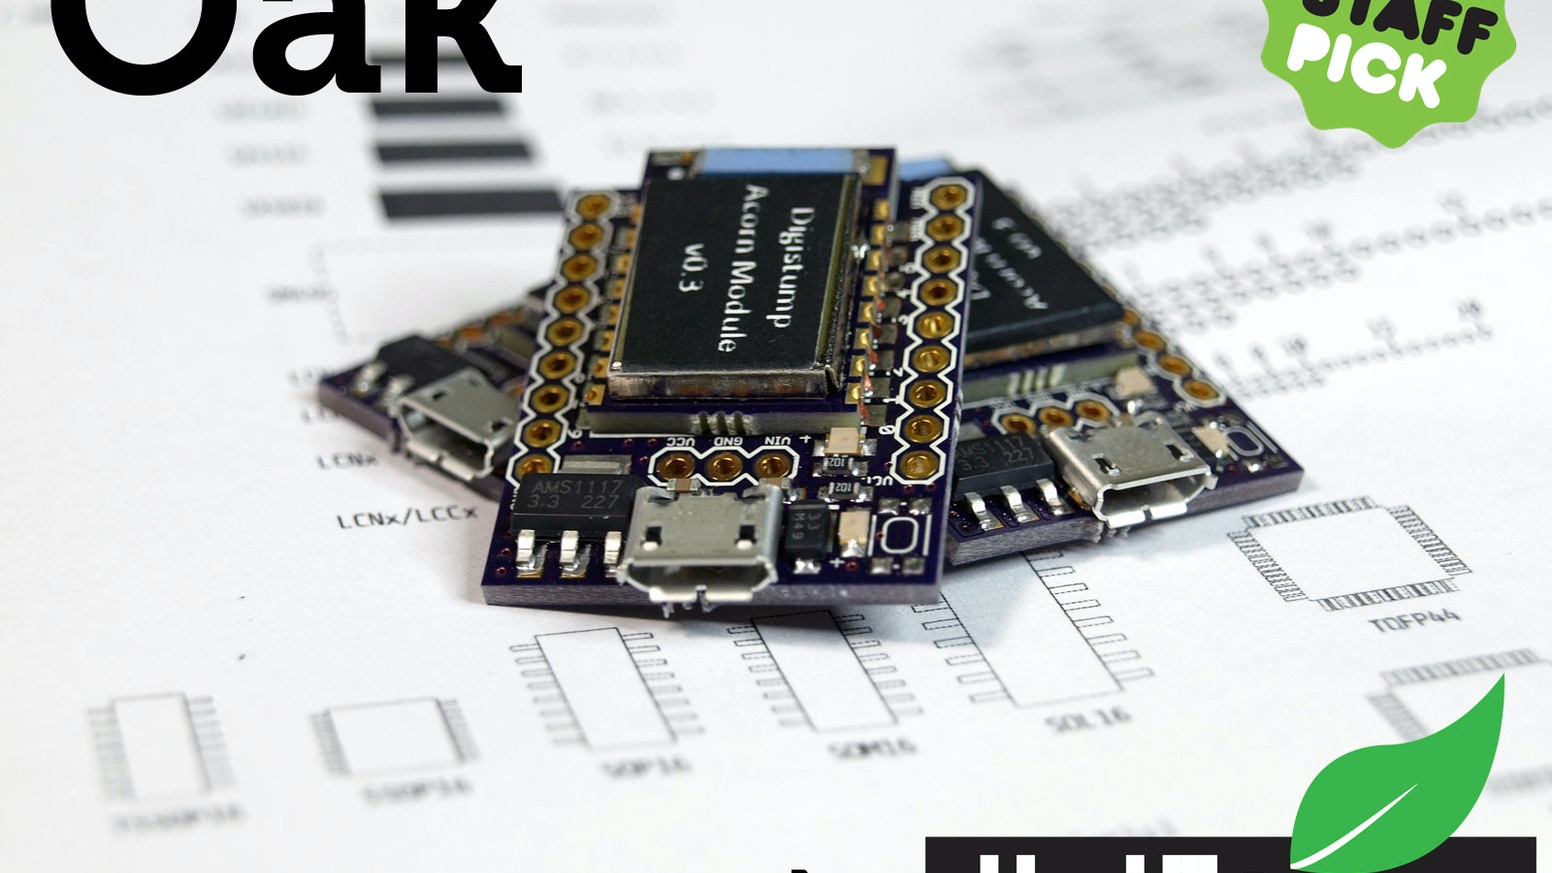 The cheap, tiny, cloud enabled Wi-Fi dev board. Arduino compatible, 32-bit, wireless programming, and a REST API data cloud!